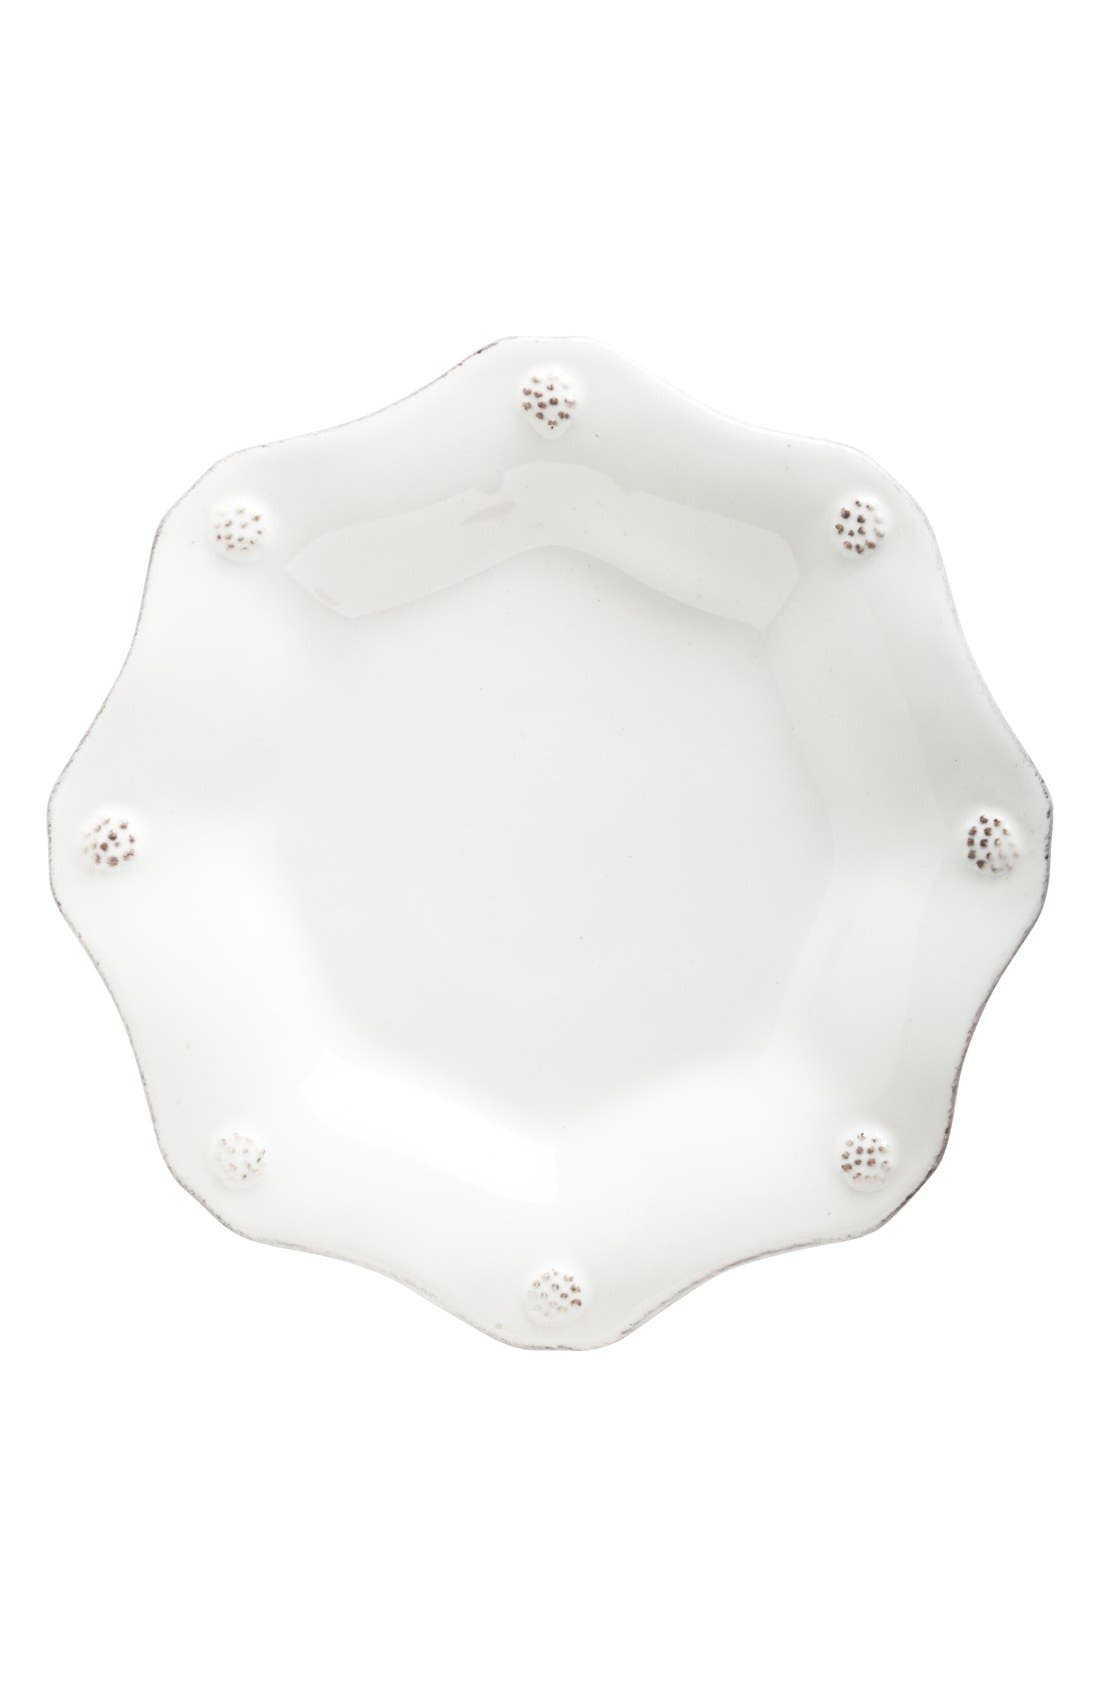 'Berry and Thread' Scalloped Tea Plate,                         Main,                         color, WHITEWASH